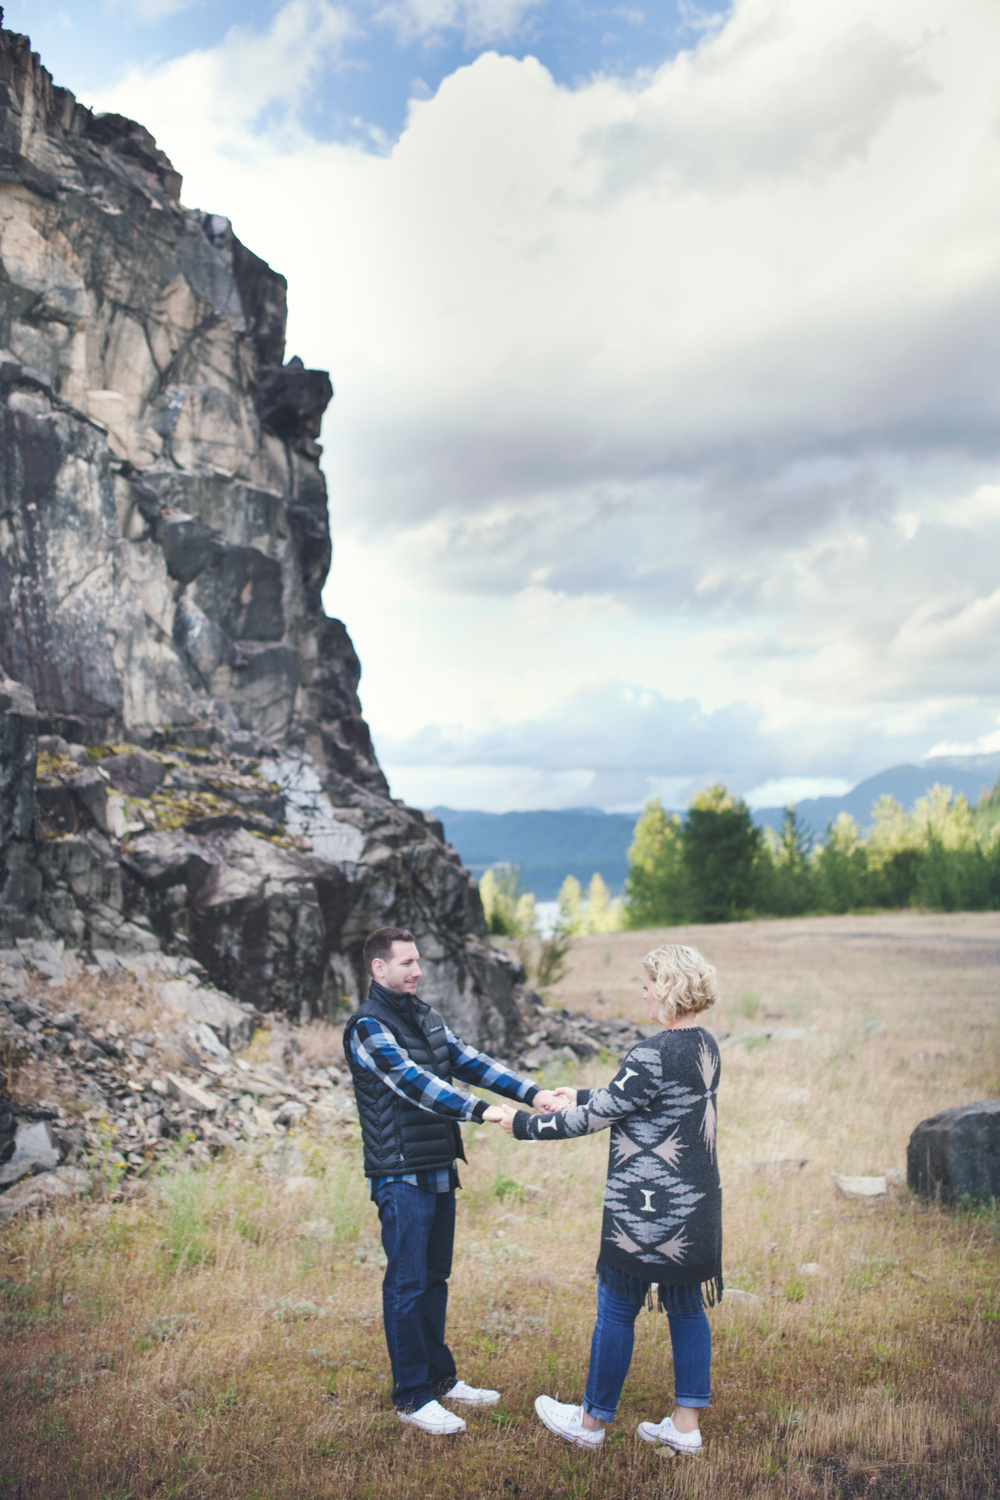 041Meagan+Tommy @ Latourell Falls +Oregon+Engagement+Session+Portland+Wedding+Film+Photography@outlivecreative.jpg